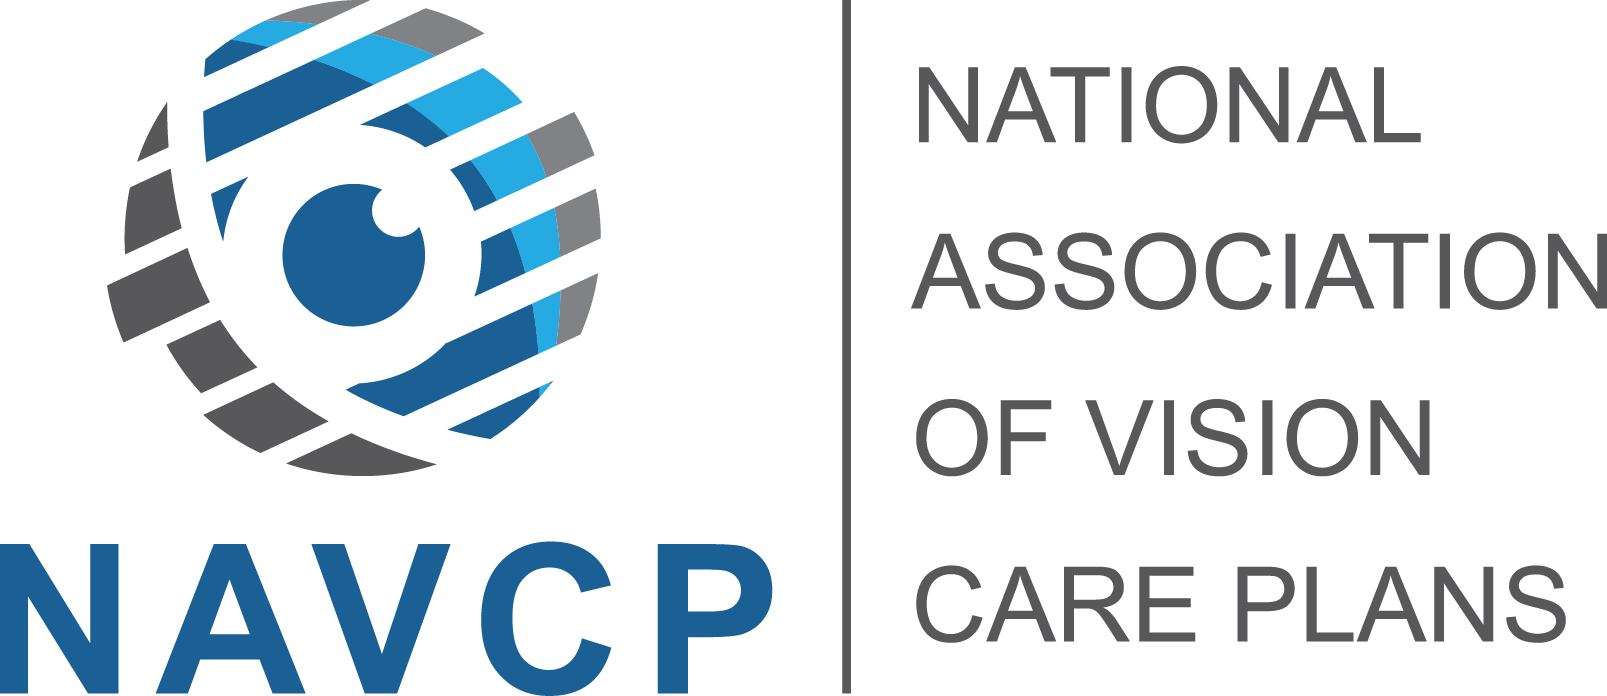 National Association of Vision Care Plans